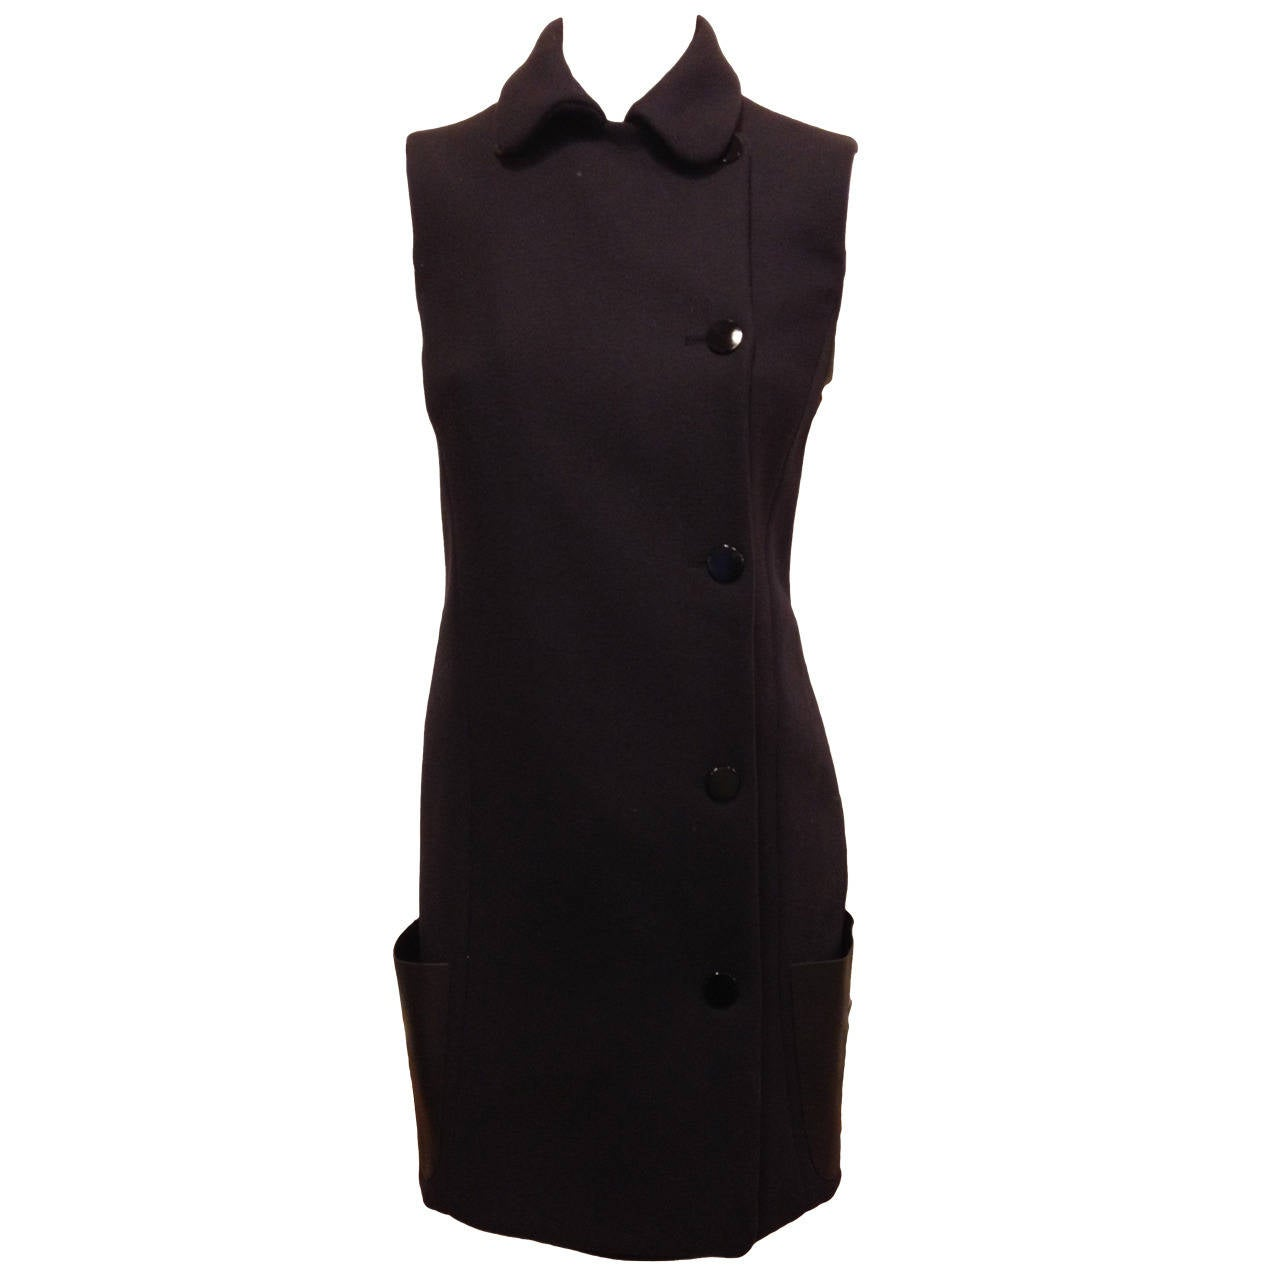 Celine Navy Wool Dress with Black Leather Pockets